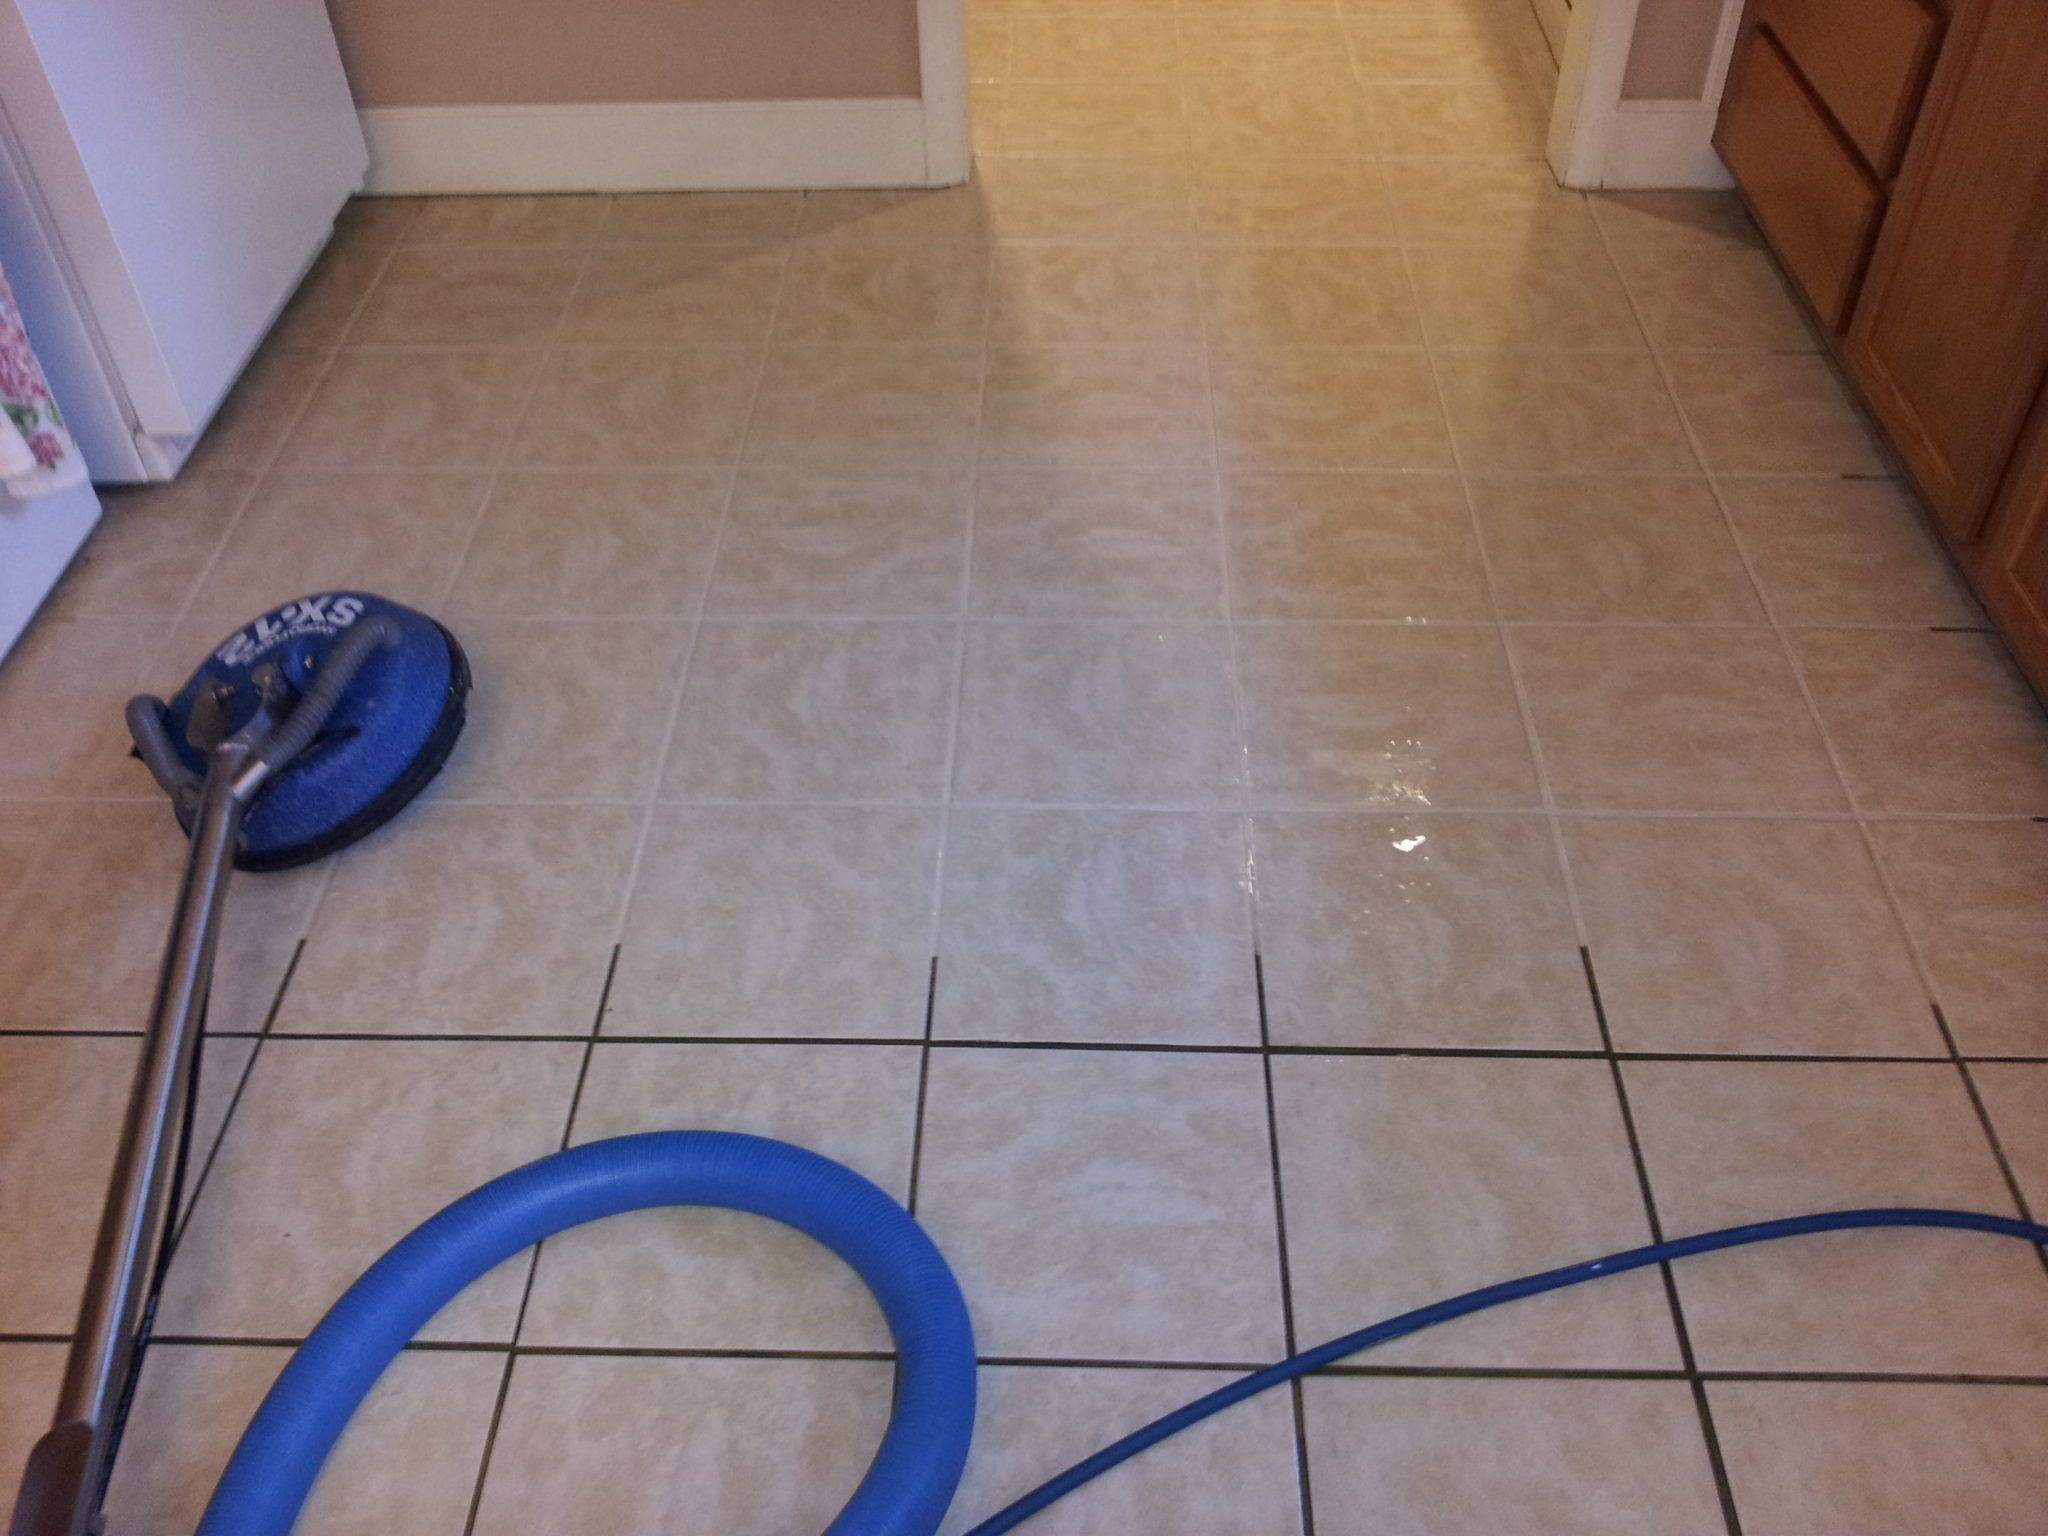 Is It Ok To Steam Clean Ceramic Tile Floors Feels Free To Follow